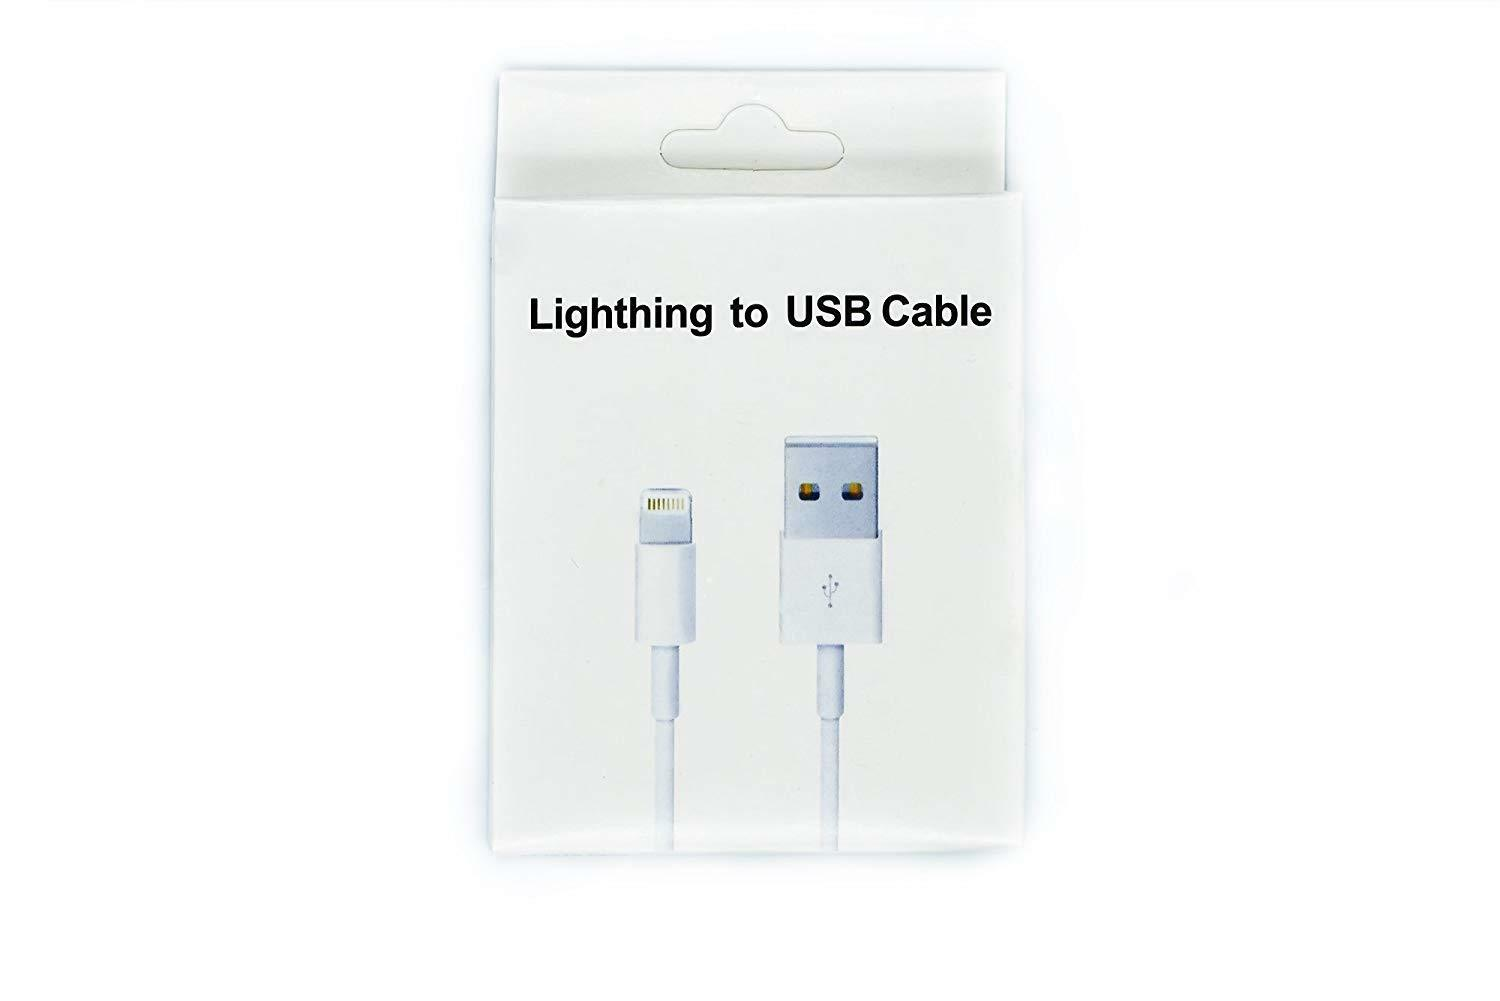 69ab93fcf14 MARCA nuevo iPhone de Apple genuino X / 8 Plus, 8/7-6 S y 5S C relámpago  Sync cargador Cable de datos USB cable 1MT iPhone 7 Plus/7/6 Plus/6/5s/c  5/5/iPad ...